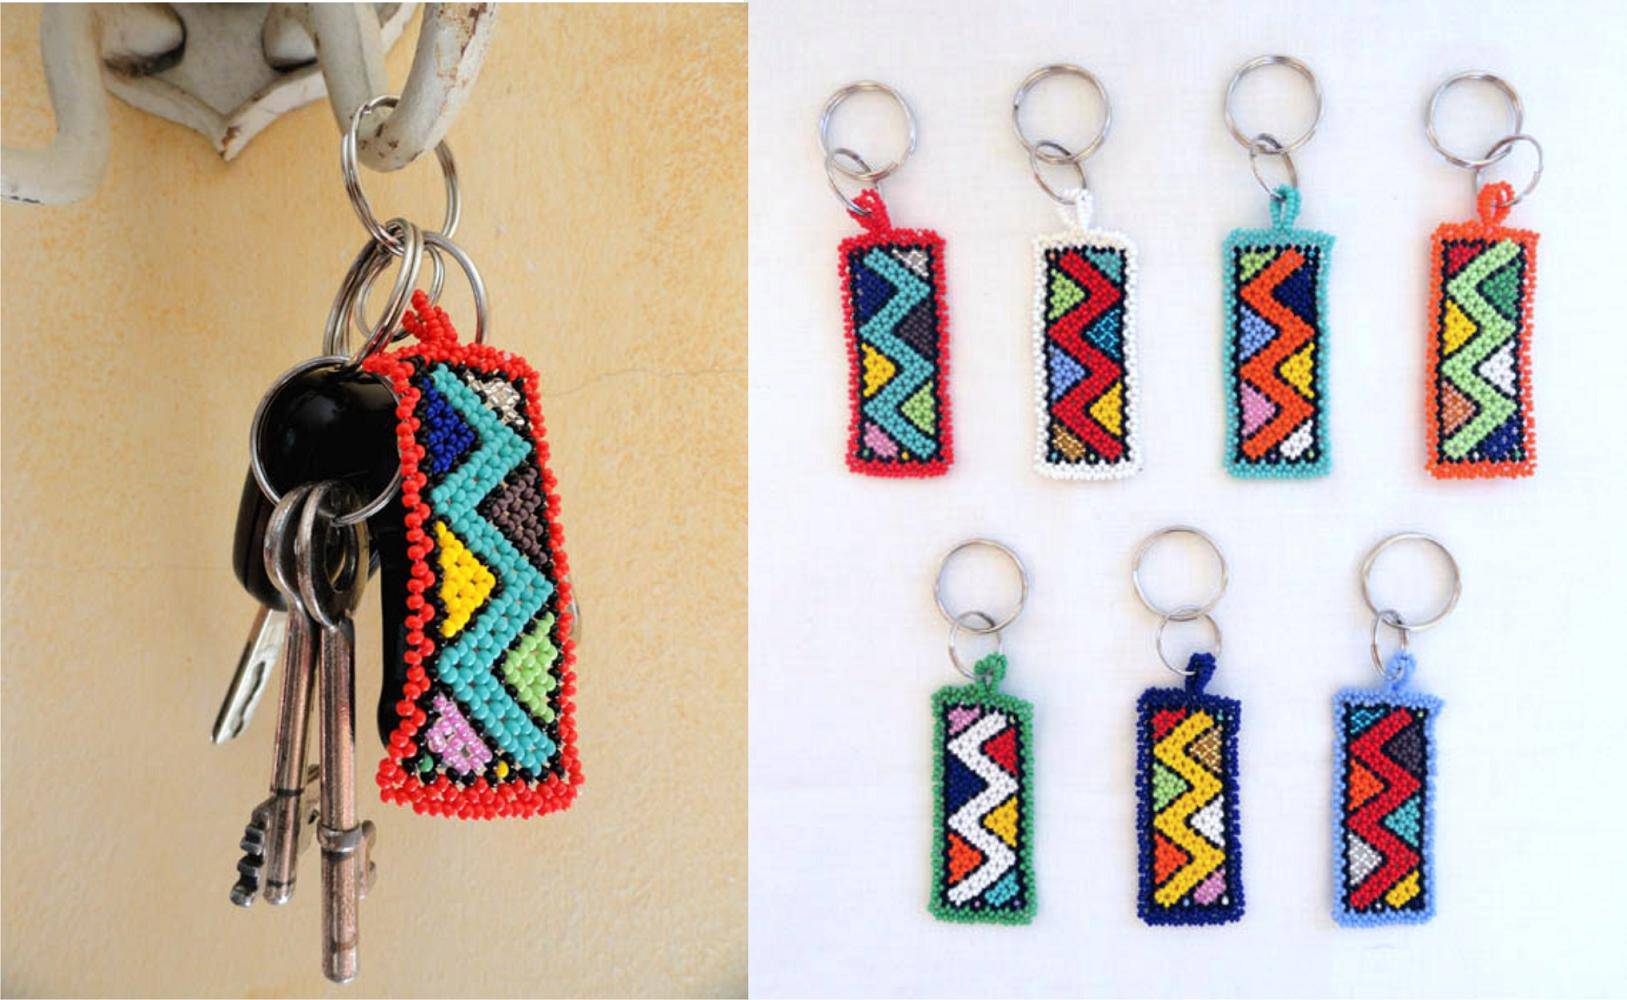 Wedding Gifts South Africa: African Inspired Corporate Gifts And Wedding Favours